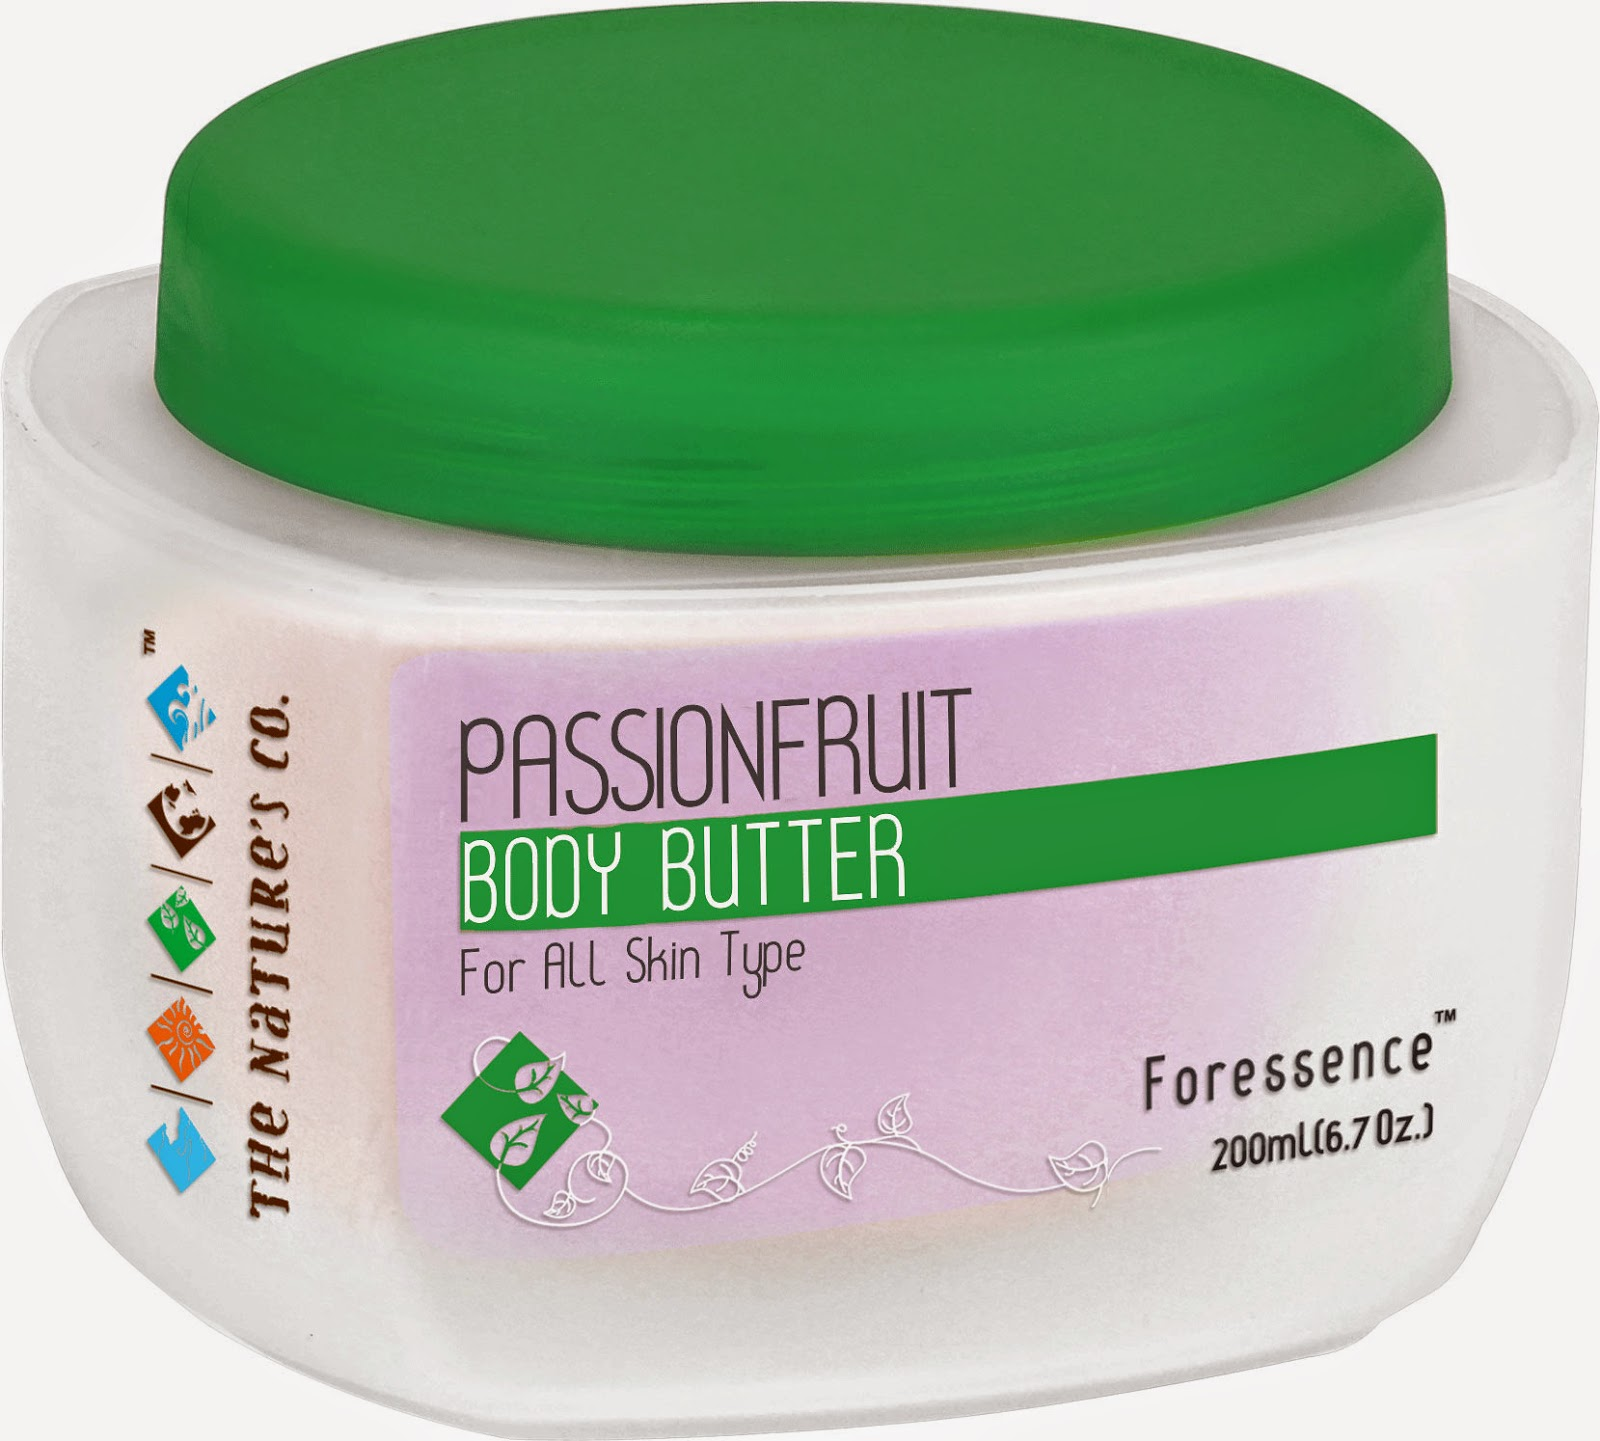 The Nature's Co.: Passion Fruit Body Butter